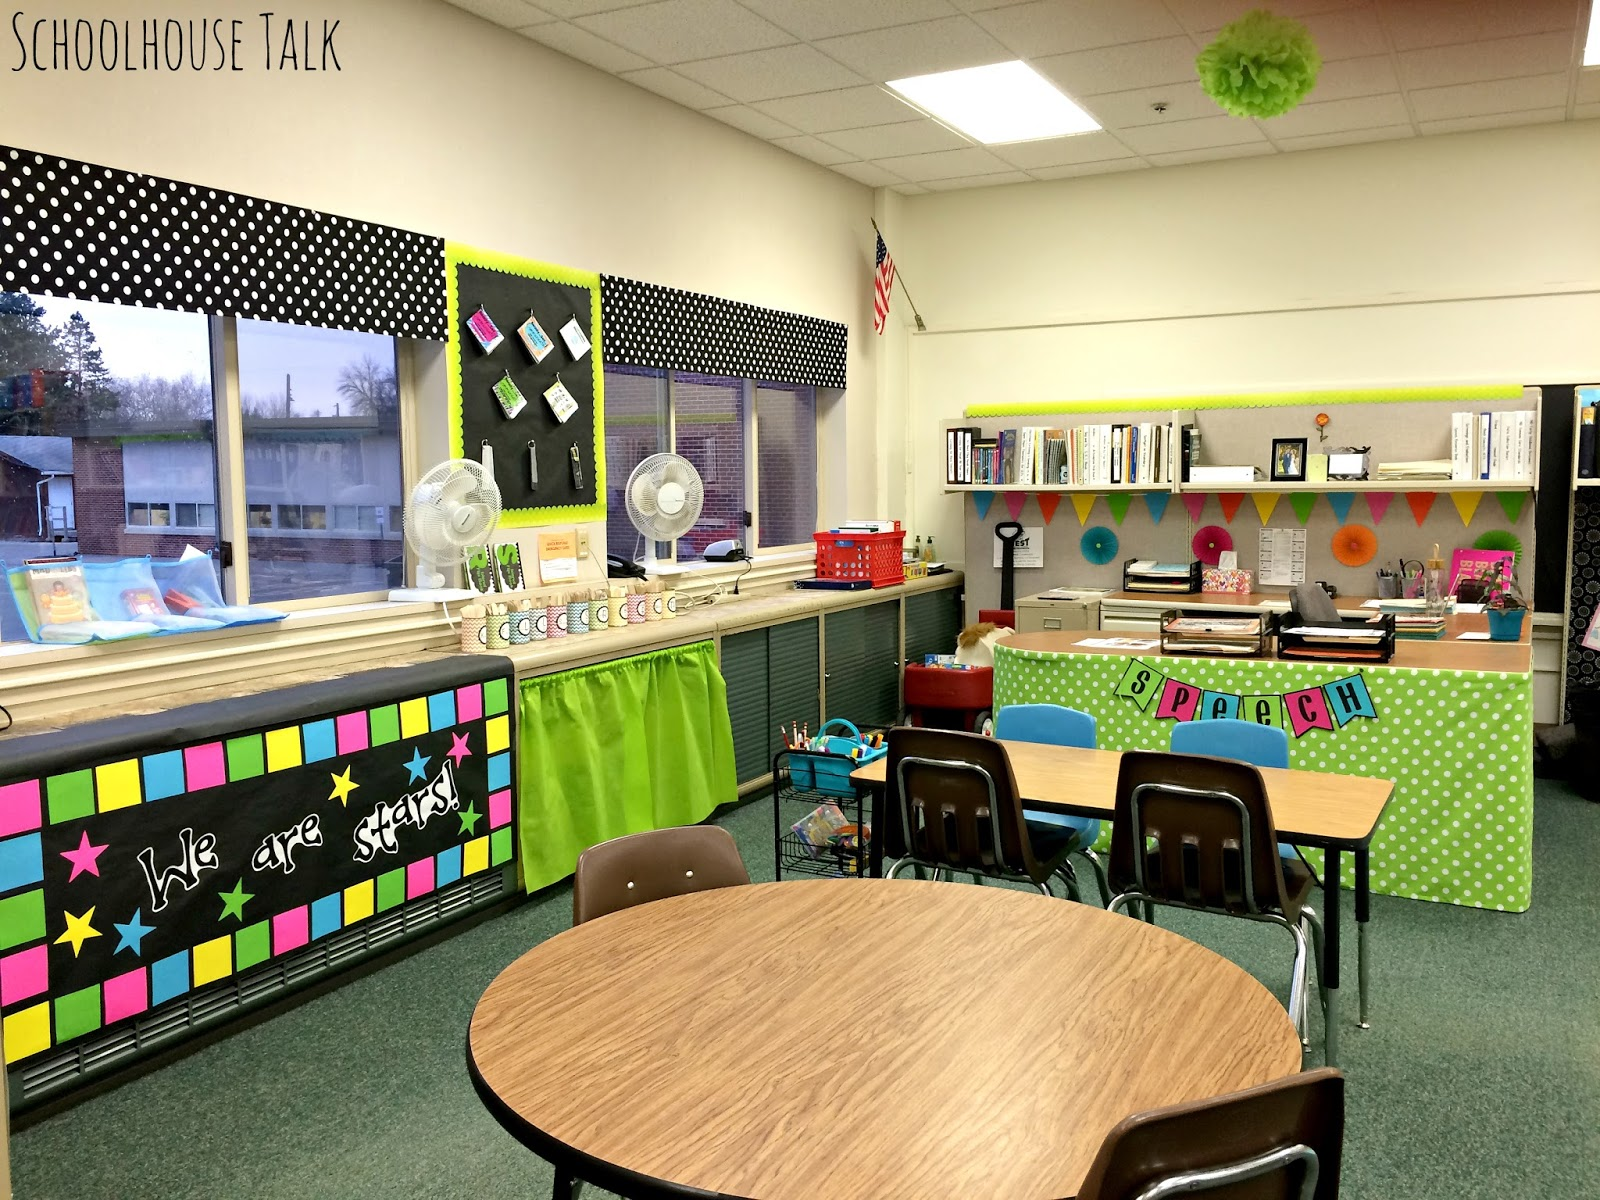 Schoolhouse Talk 2015 Speech Therapy Room Tour Part 2